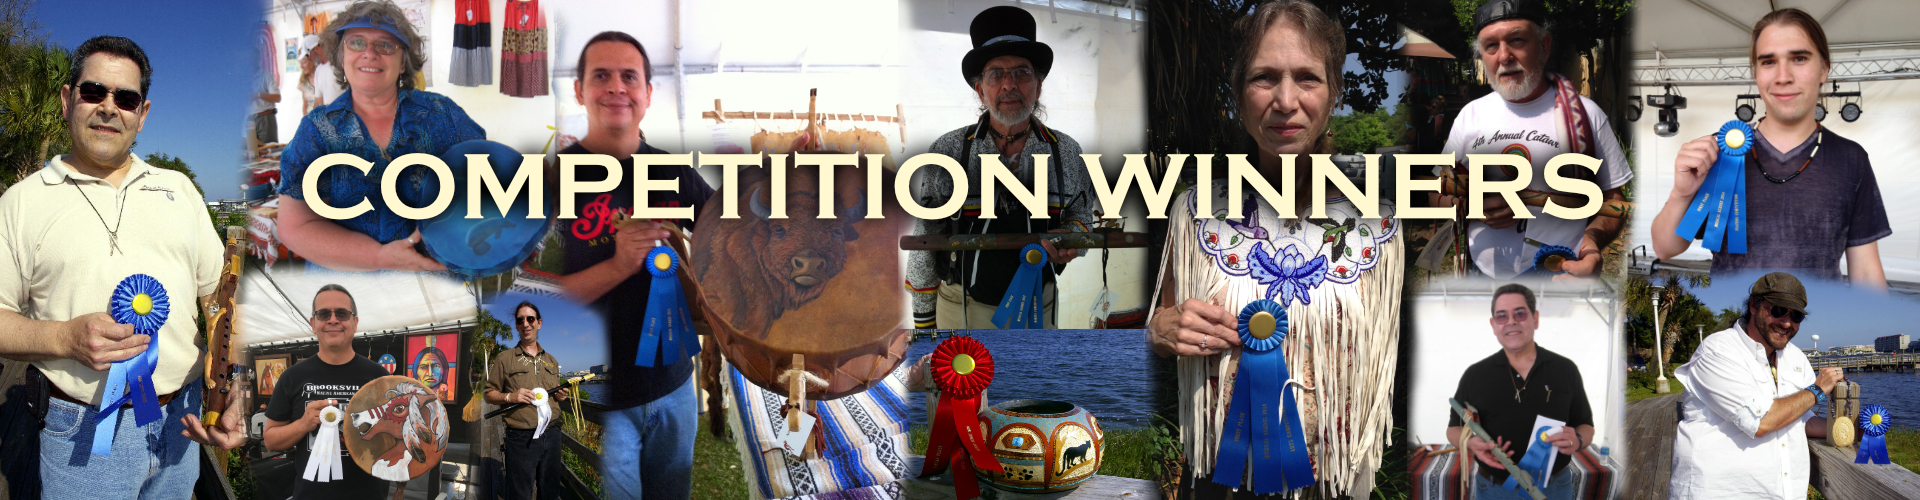 Competition Winners Image